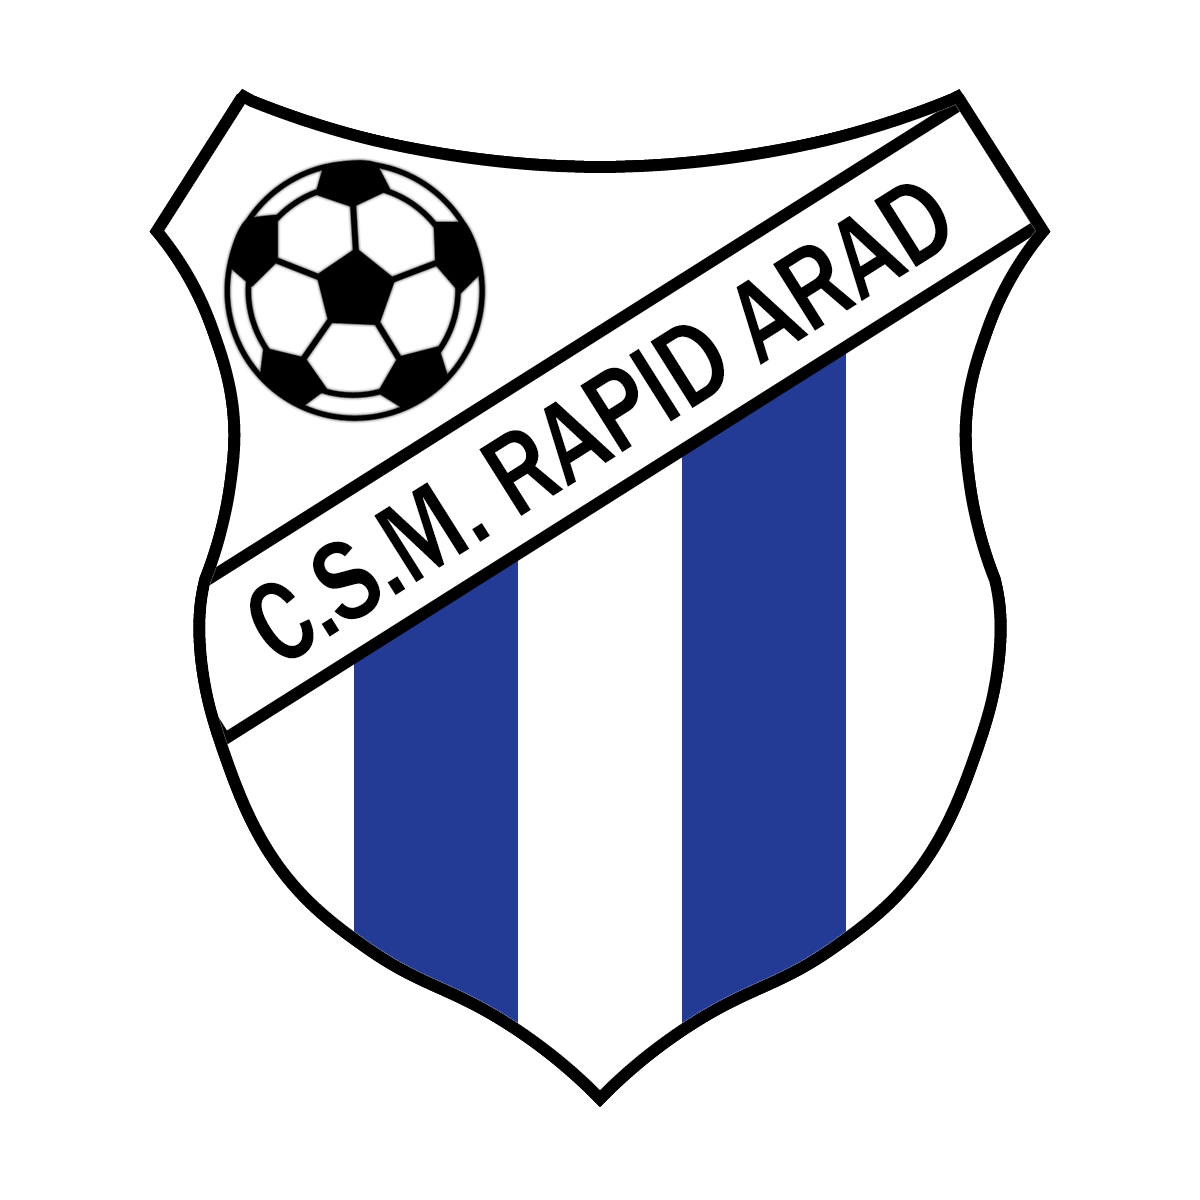 https://i.ibb.co/9bzbtS5/csm-rapid-arad.png